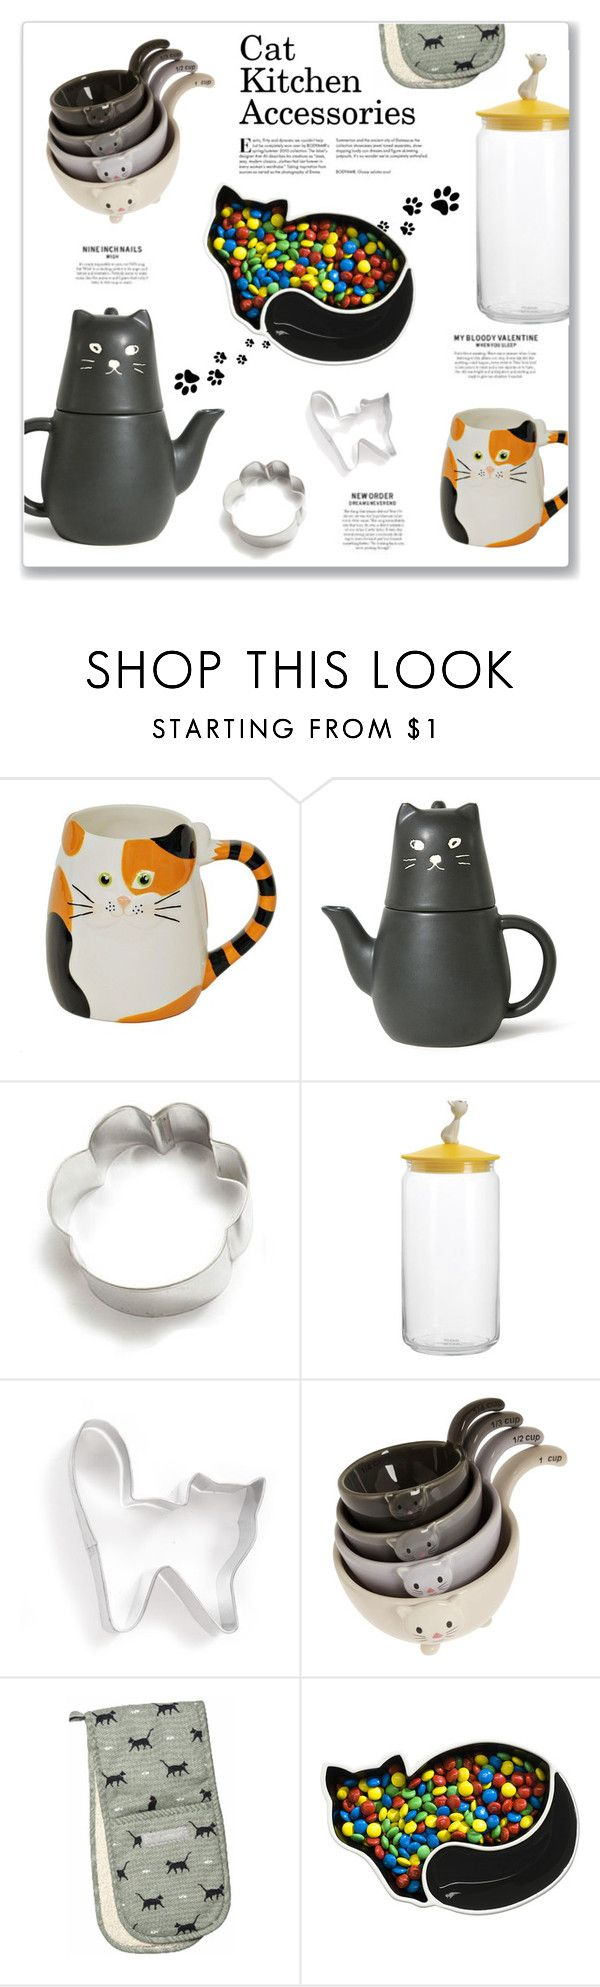 42 best andrea branzi images on pinterest | alessi, safari and chairs